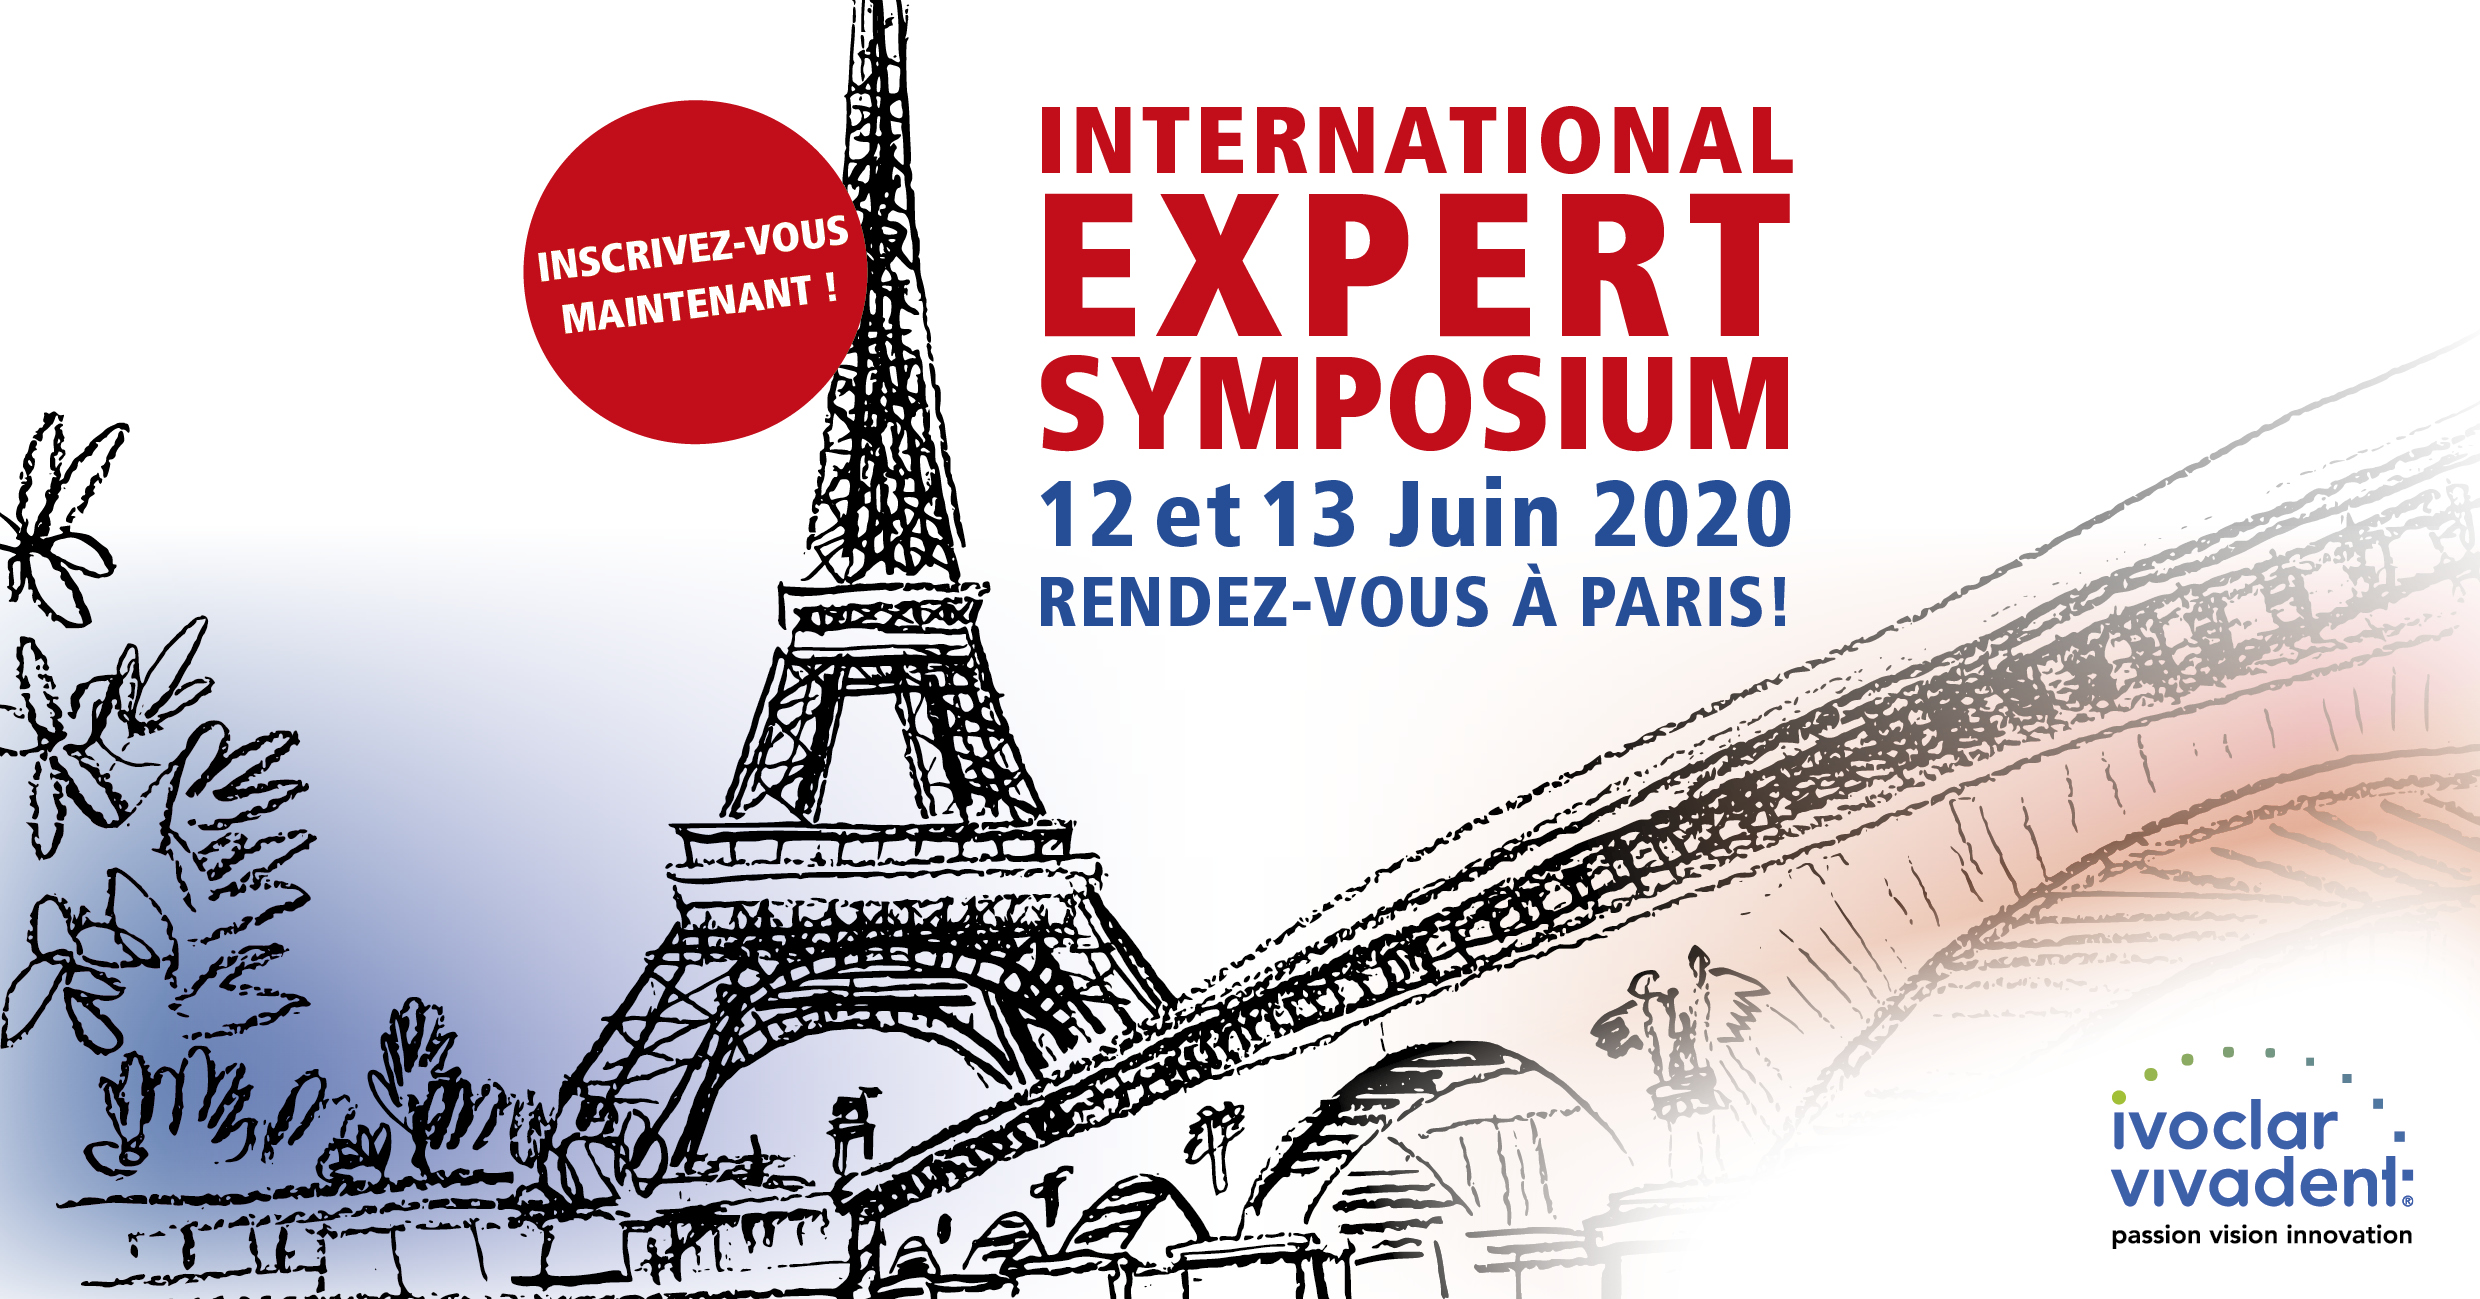 IES 2020 : Les experts dentaires se réunissent à Paris